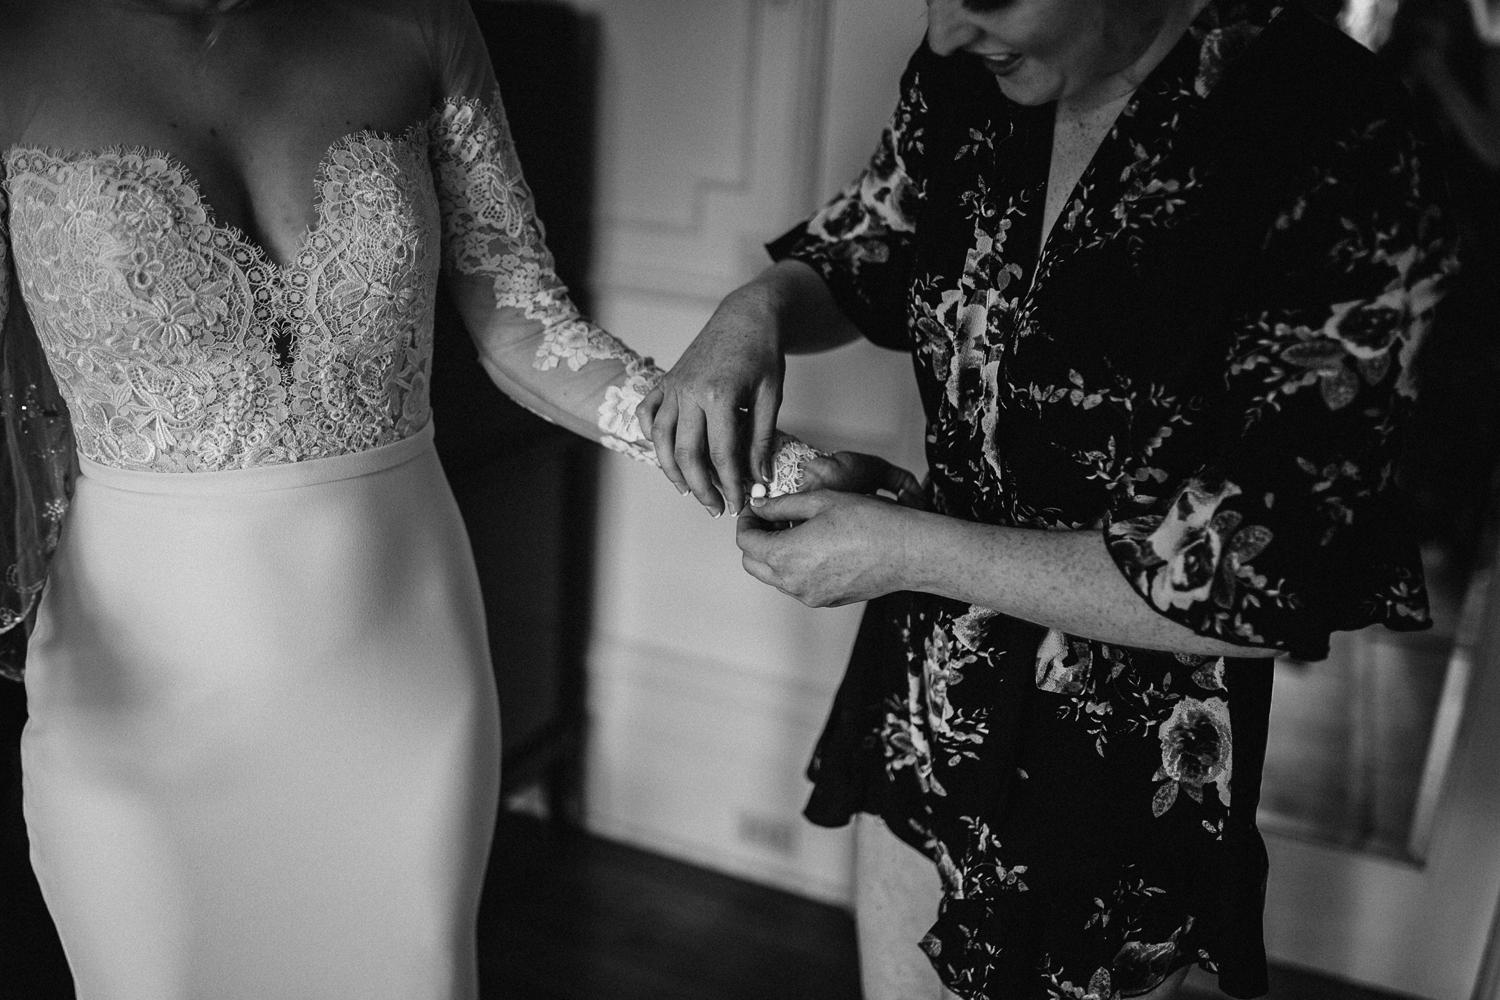 perth manor wedding - kerry ford photography-028.jpg